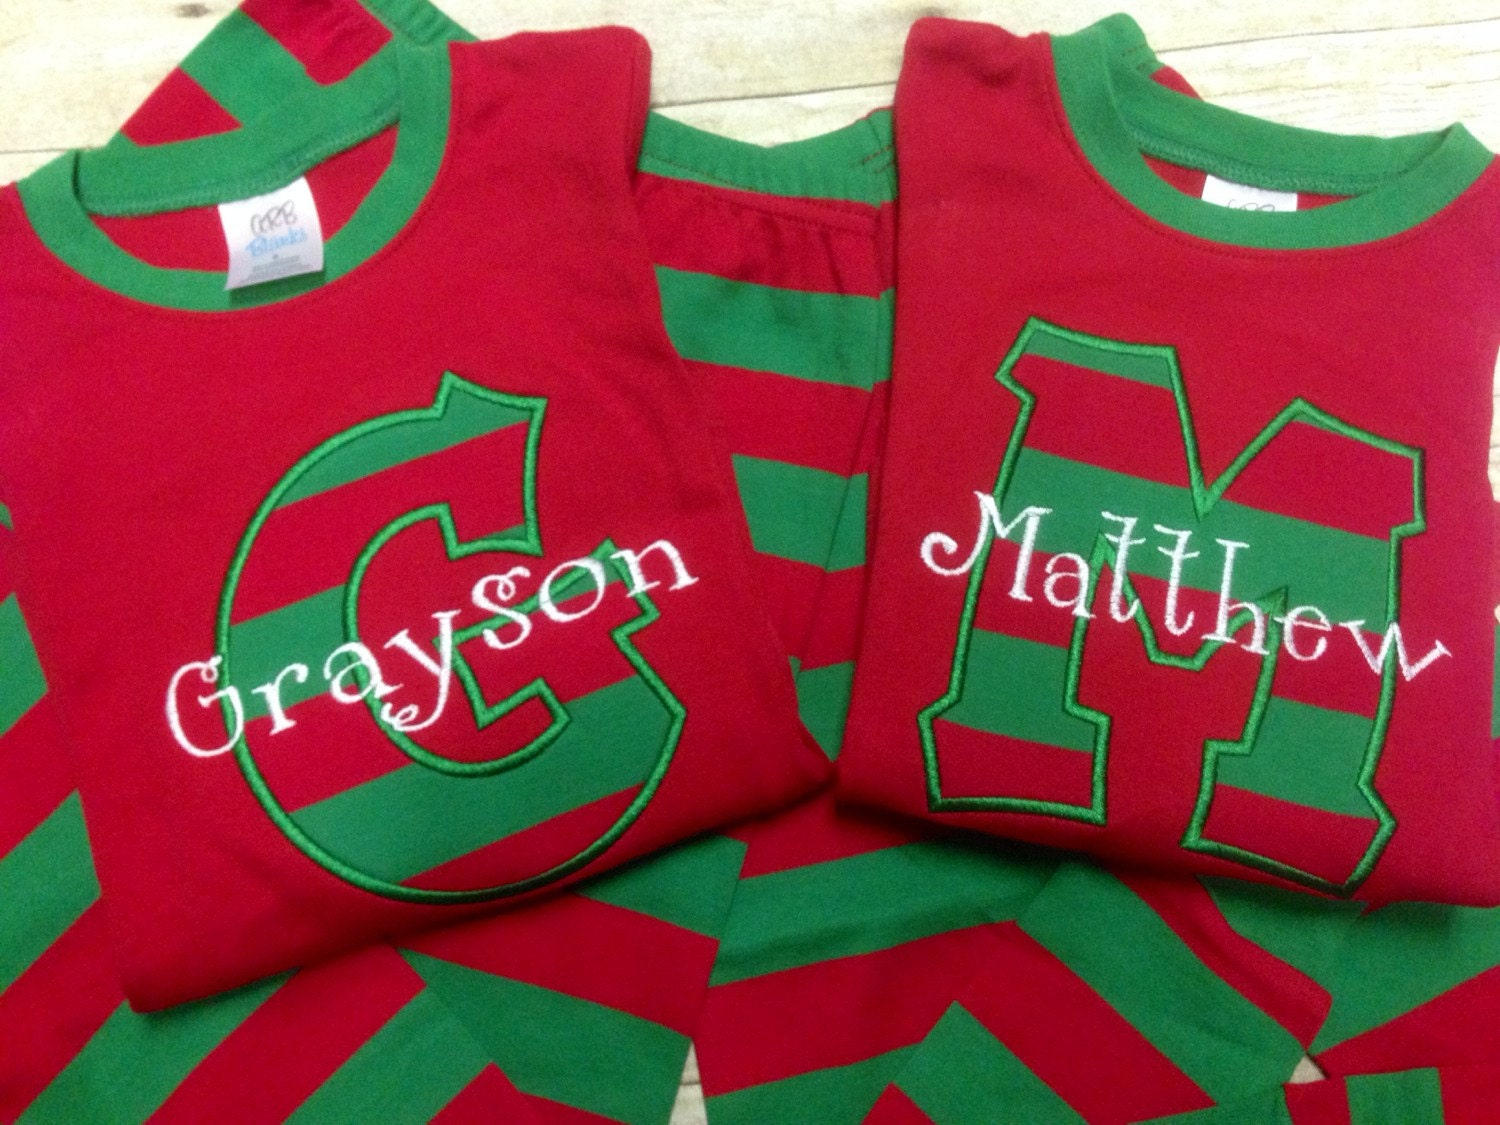 Our extensive collection of Personalized Christmas Pajamas in a wide variety of styles allow you to wear your passion around the house. Turn your interests, causes or fan favorites into a killer comfy pajama .